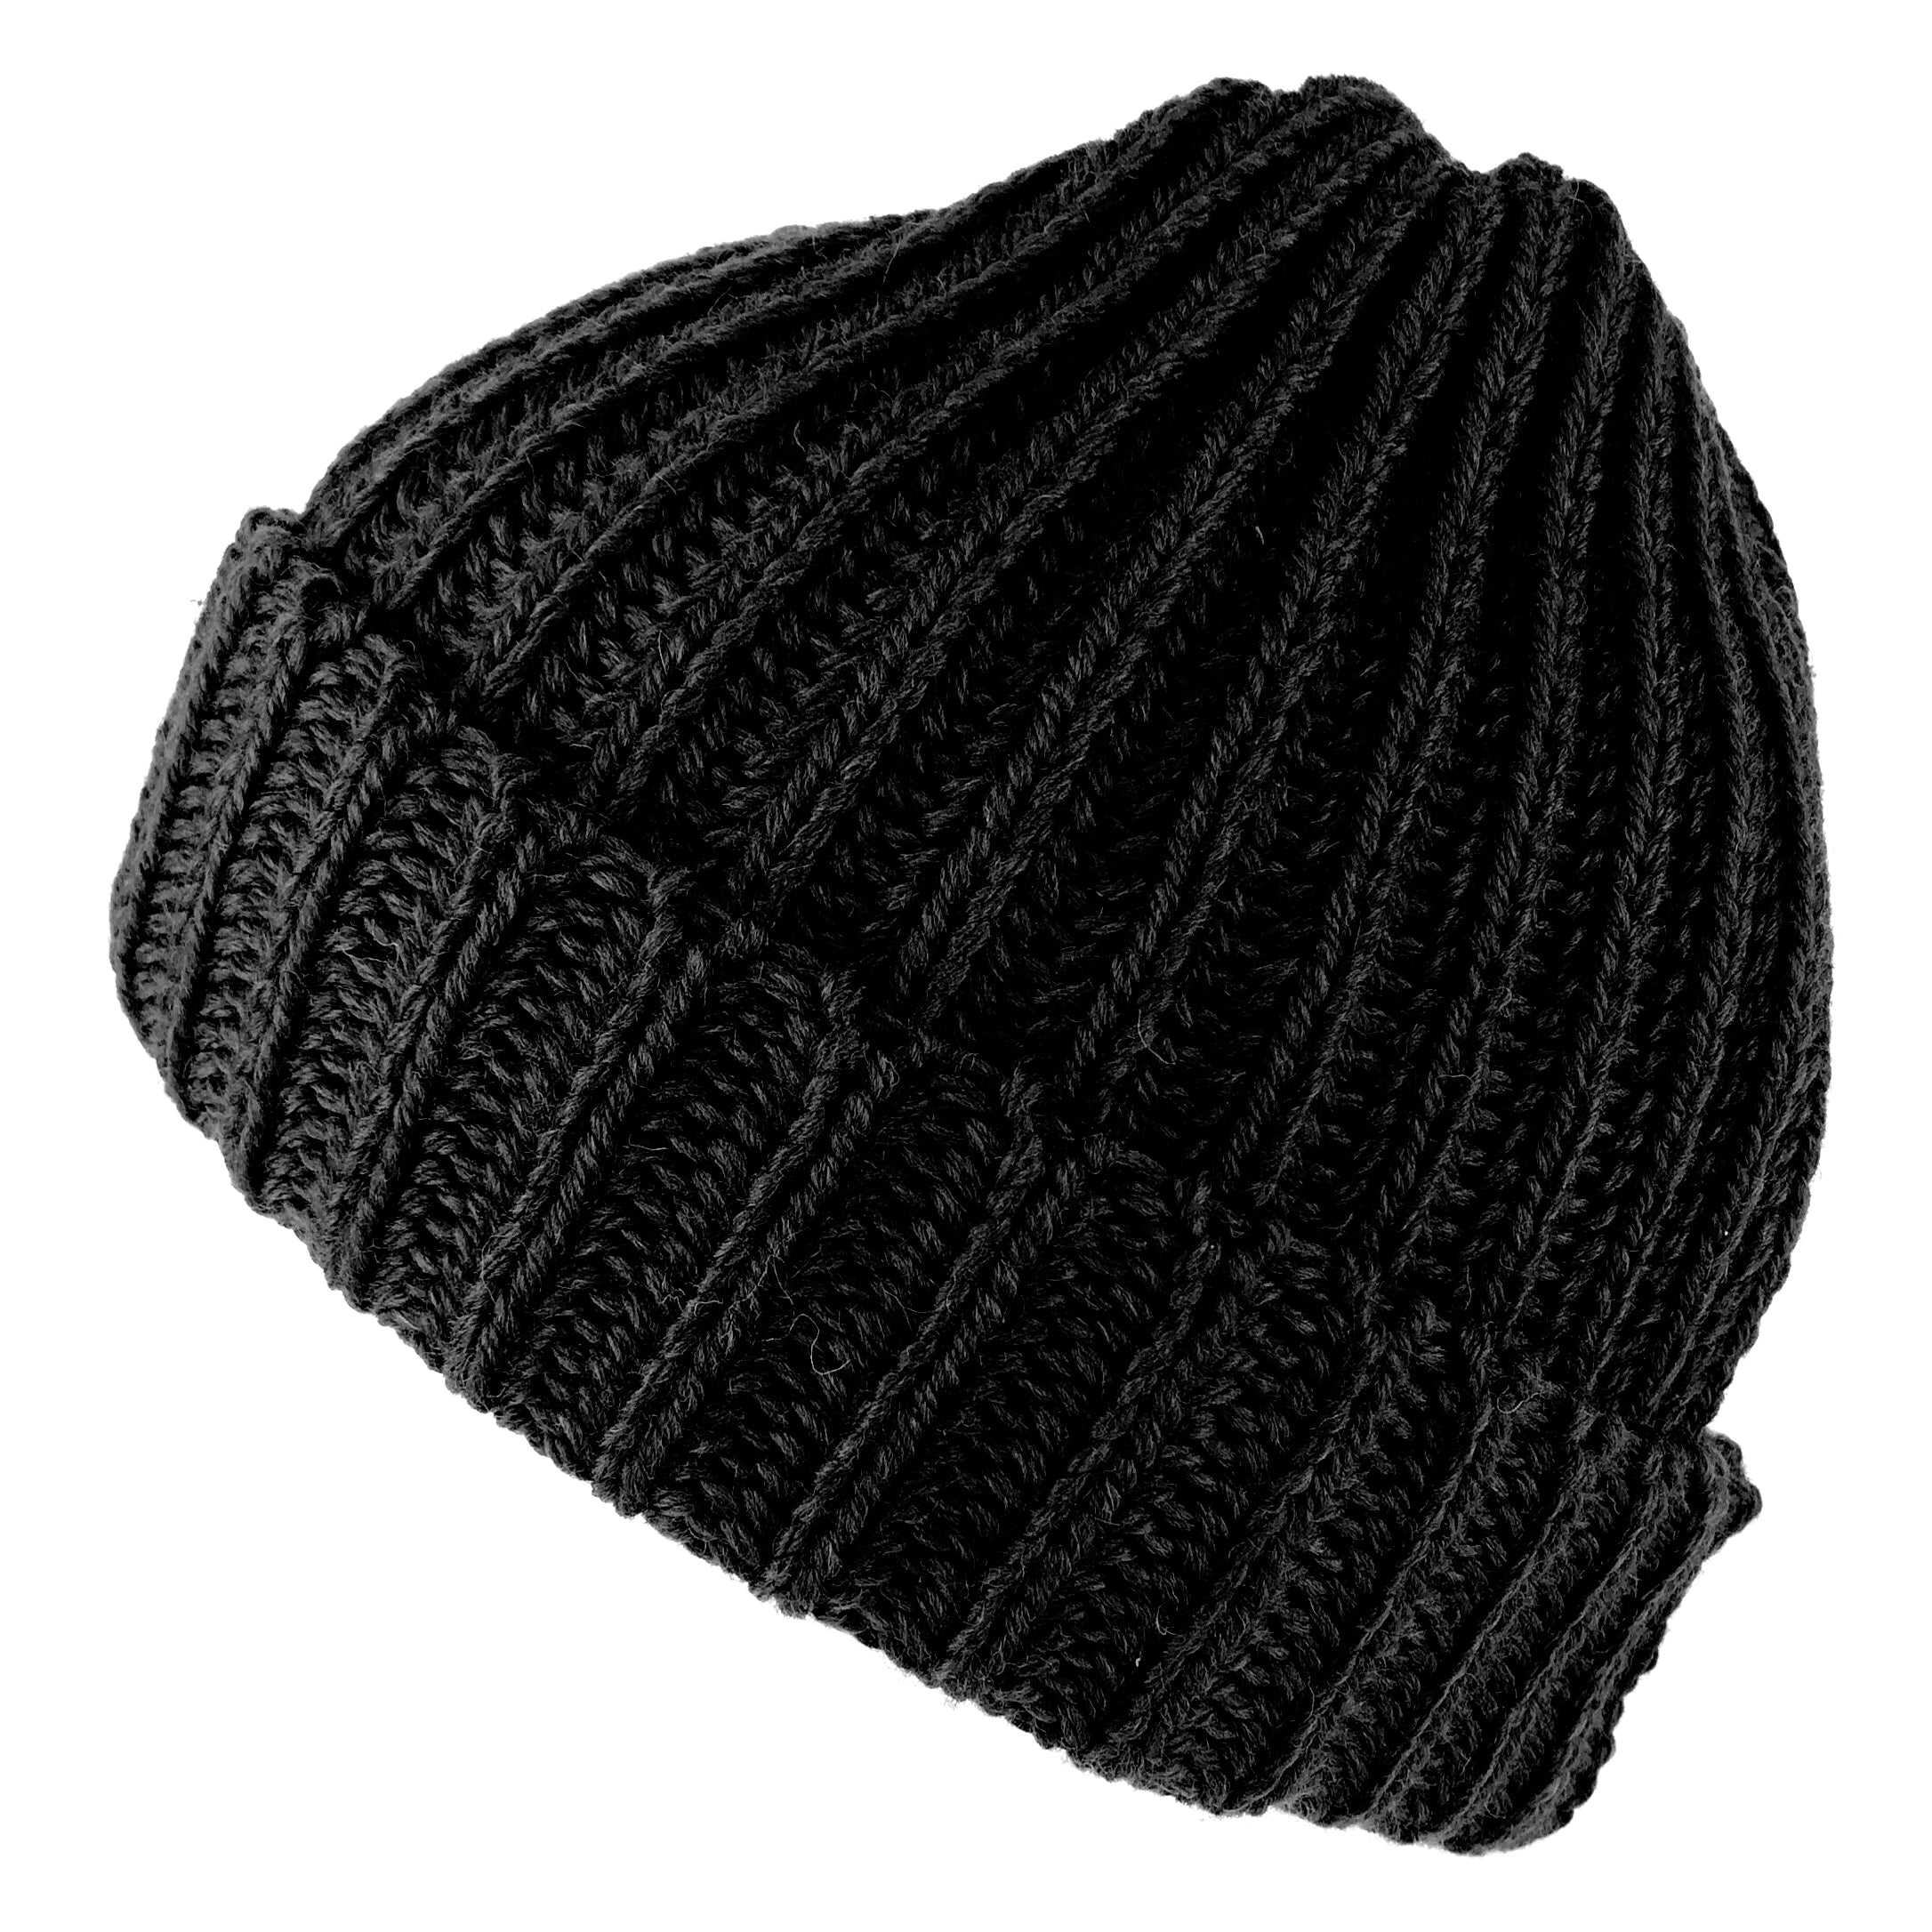 8fba49c9ce1 Wool Beanie Highland 2000 Fisherman s Hat Merino Wool Chunky Knit - Black